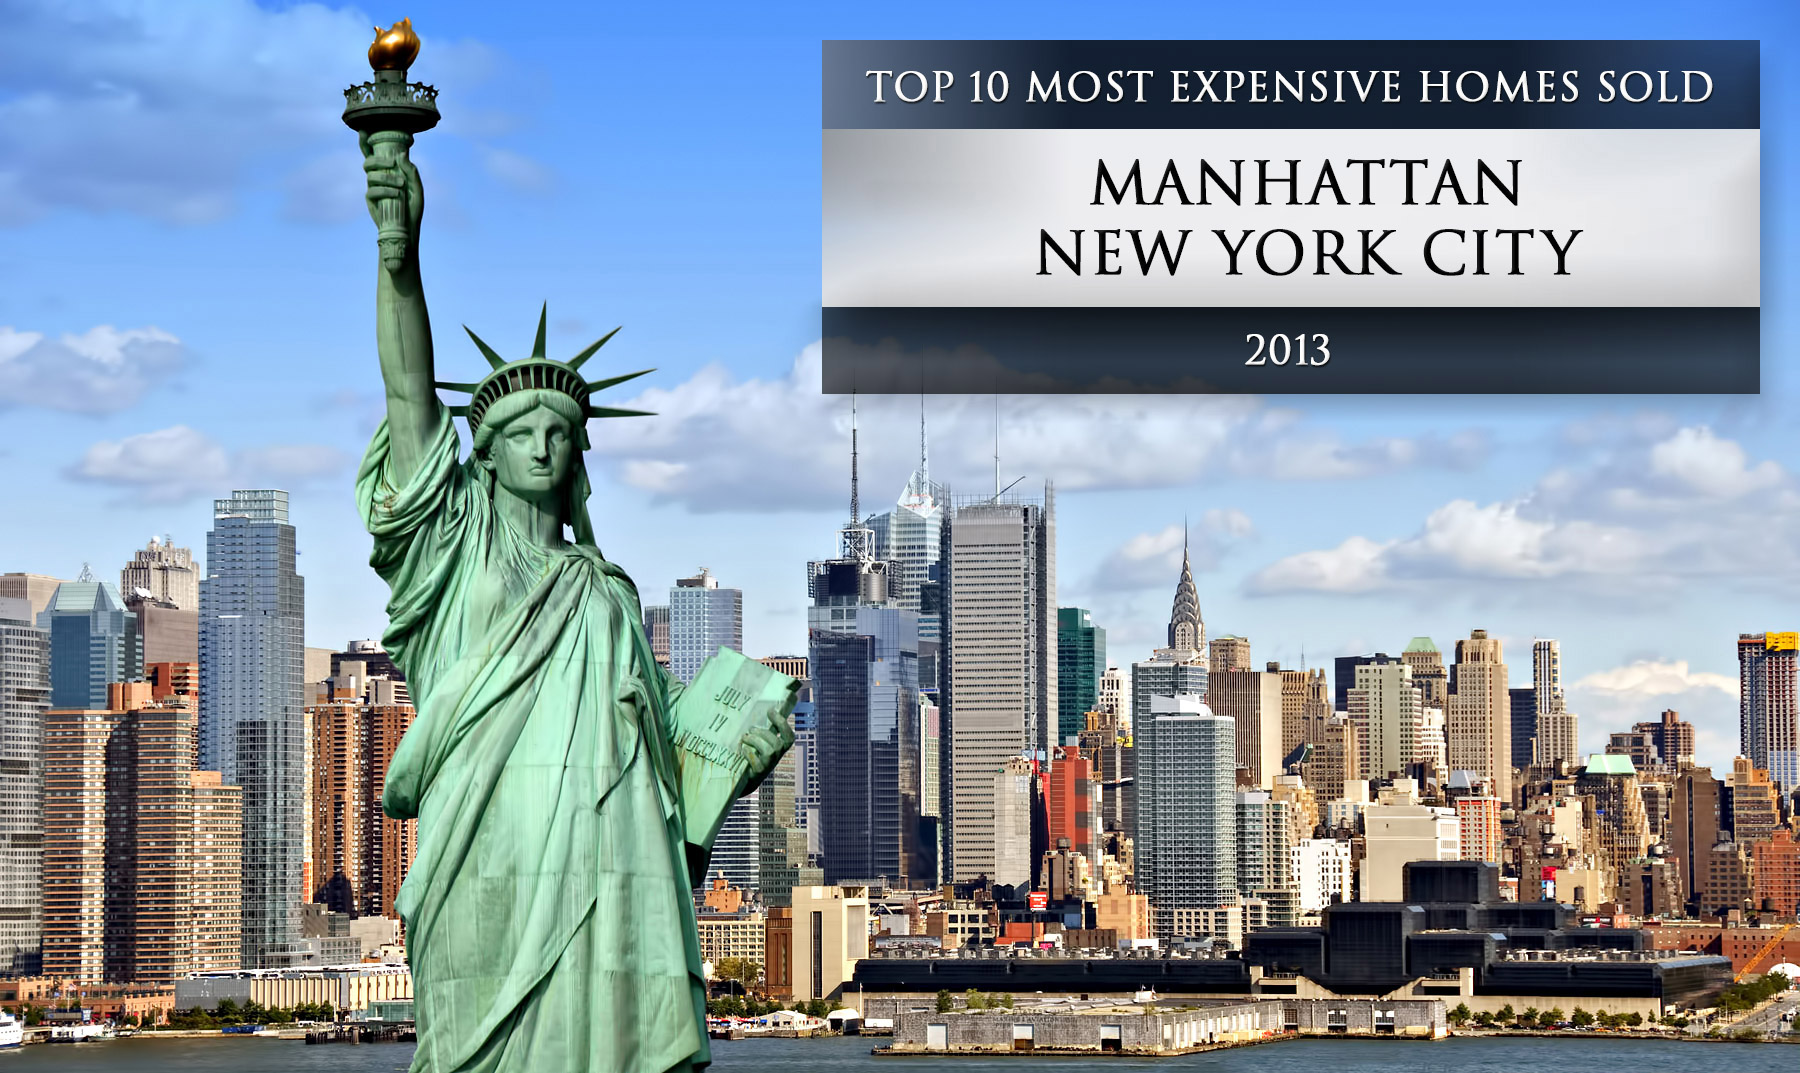 10 of the Most Expensive Manhattan, New York City Homes Sold in 2013